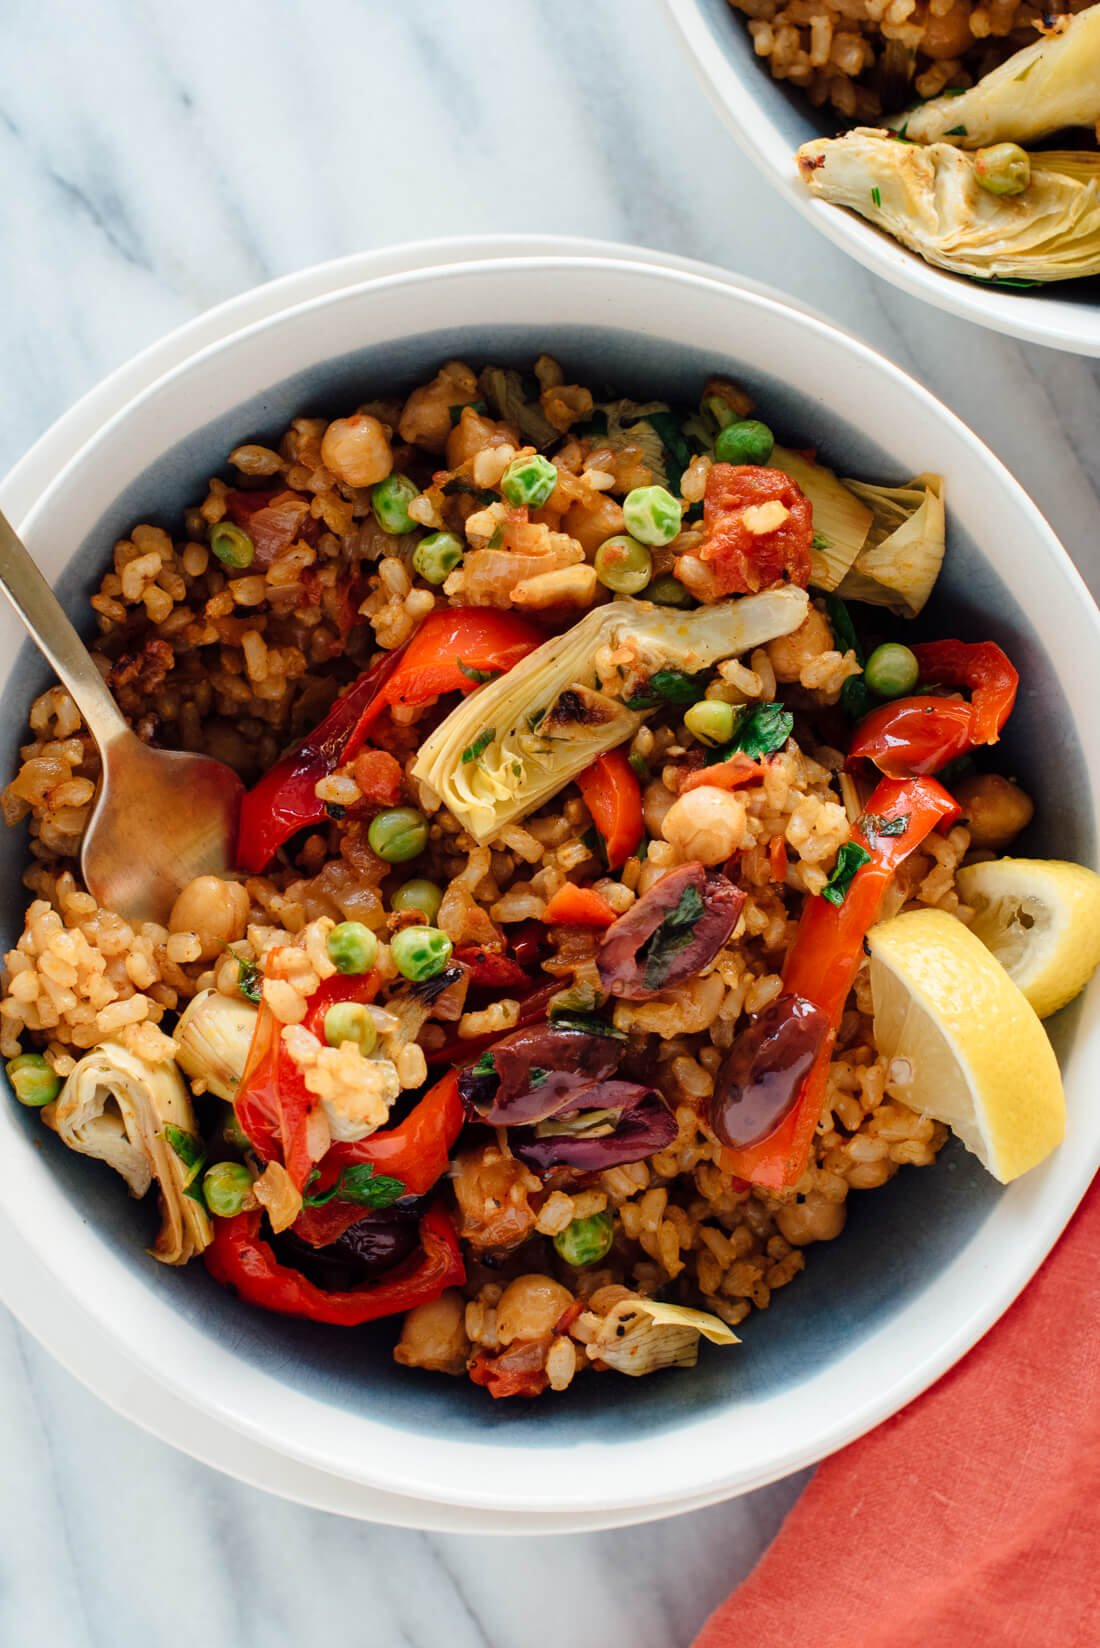 This vegetarian paella recipe is a veggie-packed twist on traditional Spanish paella!